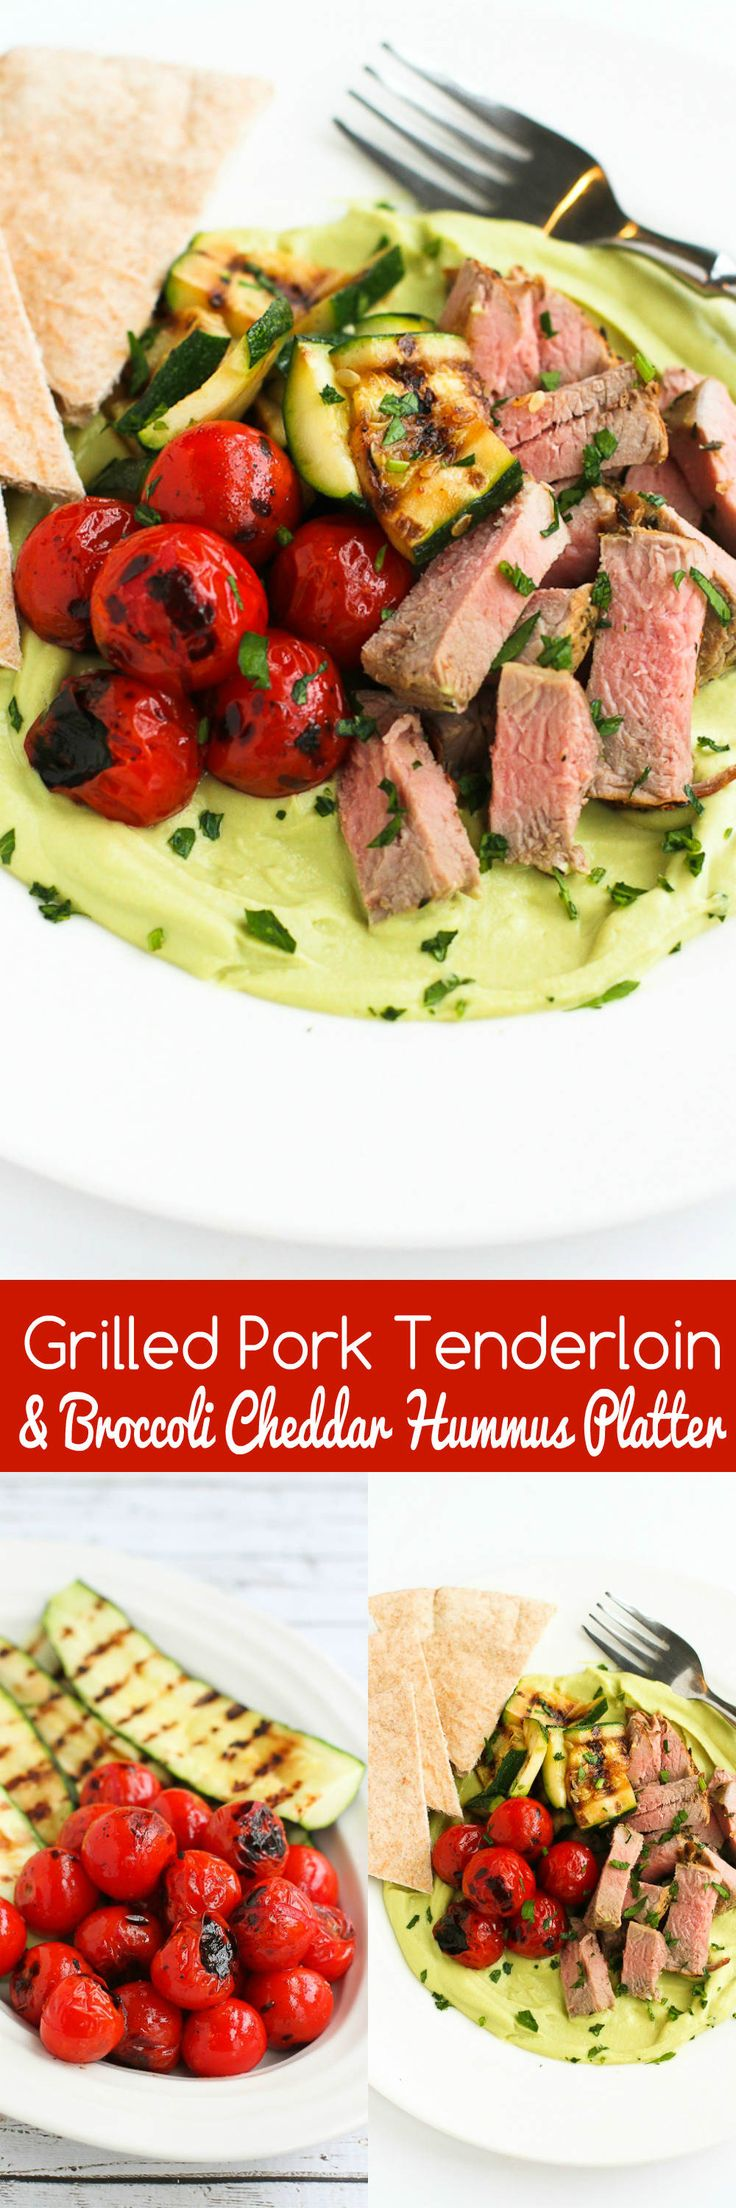 Grilled Pork Tenderloin & Broccoli Cheddar Hummus Platter…A fun take on a Middle Eastern dinner platter. And no one will ever guess what's in the hummus! 366 calories and 9 Weight Watchers SmartPoints...For the Chopped at Home Challenge! #ad